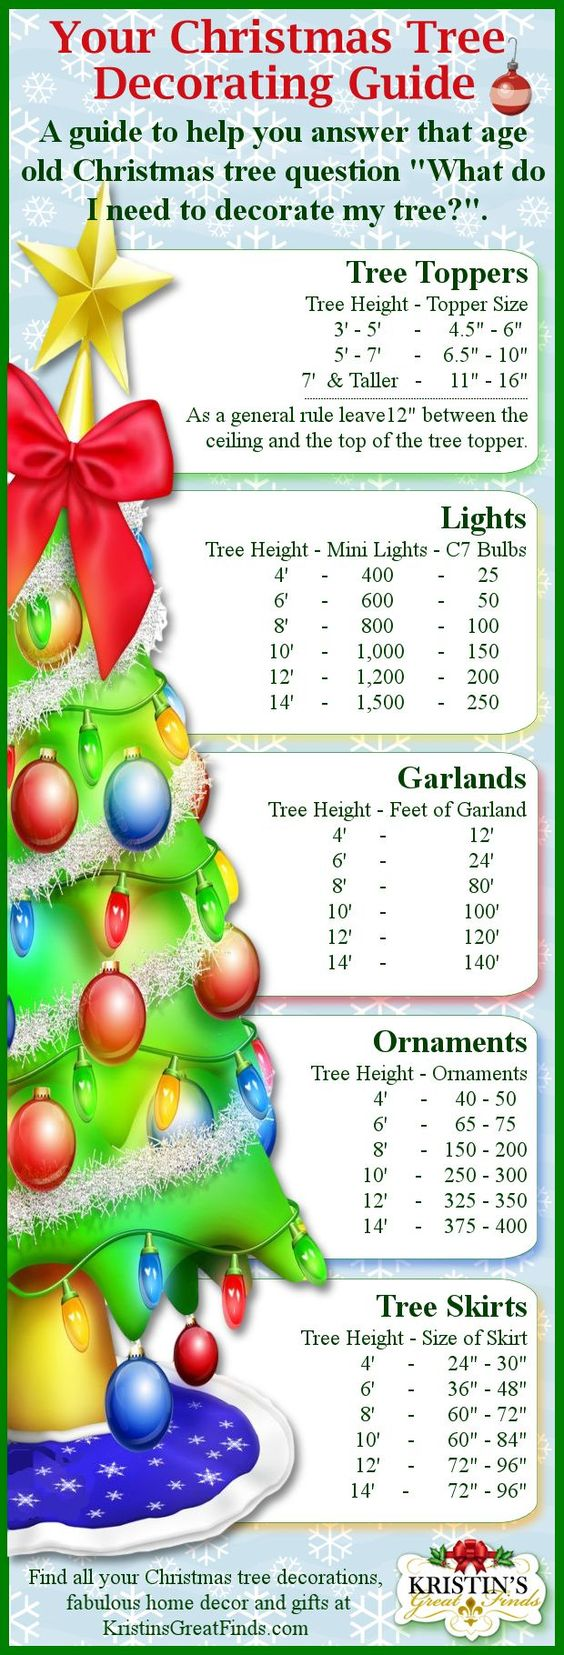 Now I won't have to guess how many ornaments, lights, garlands, etc to put on my Christmas tree ...